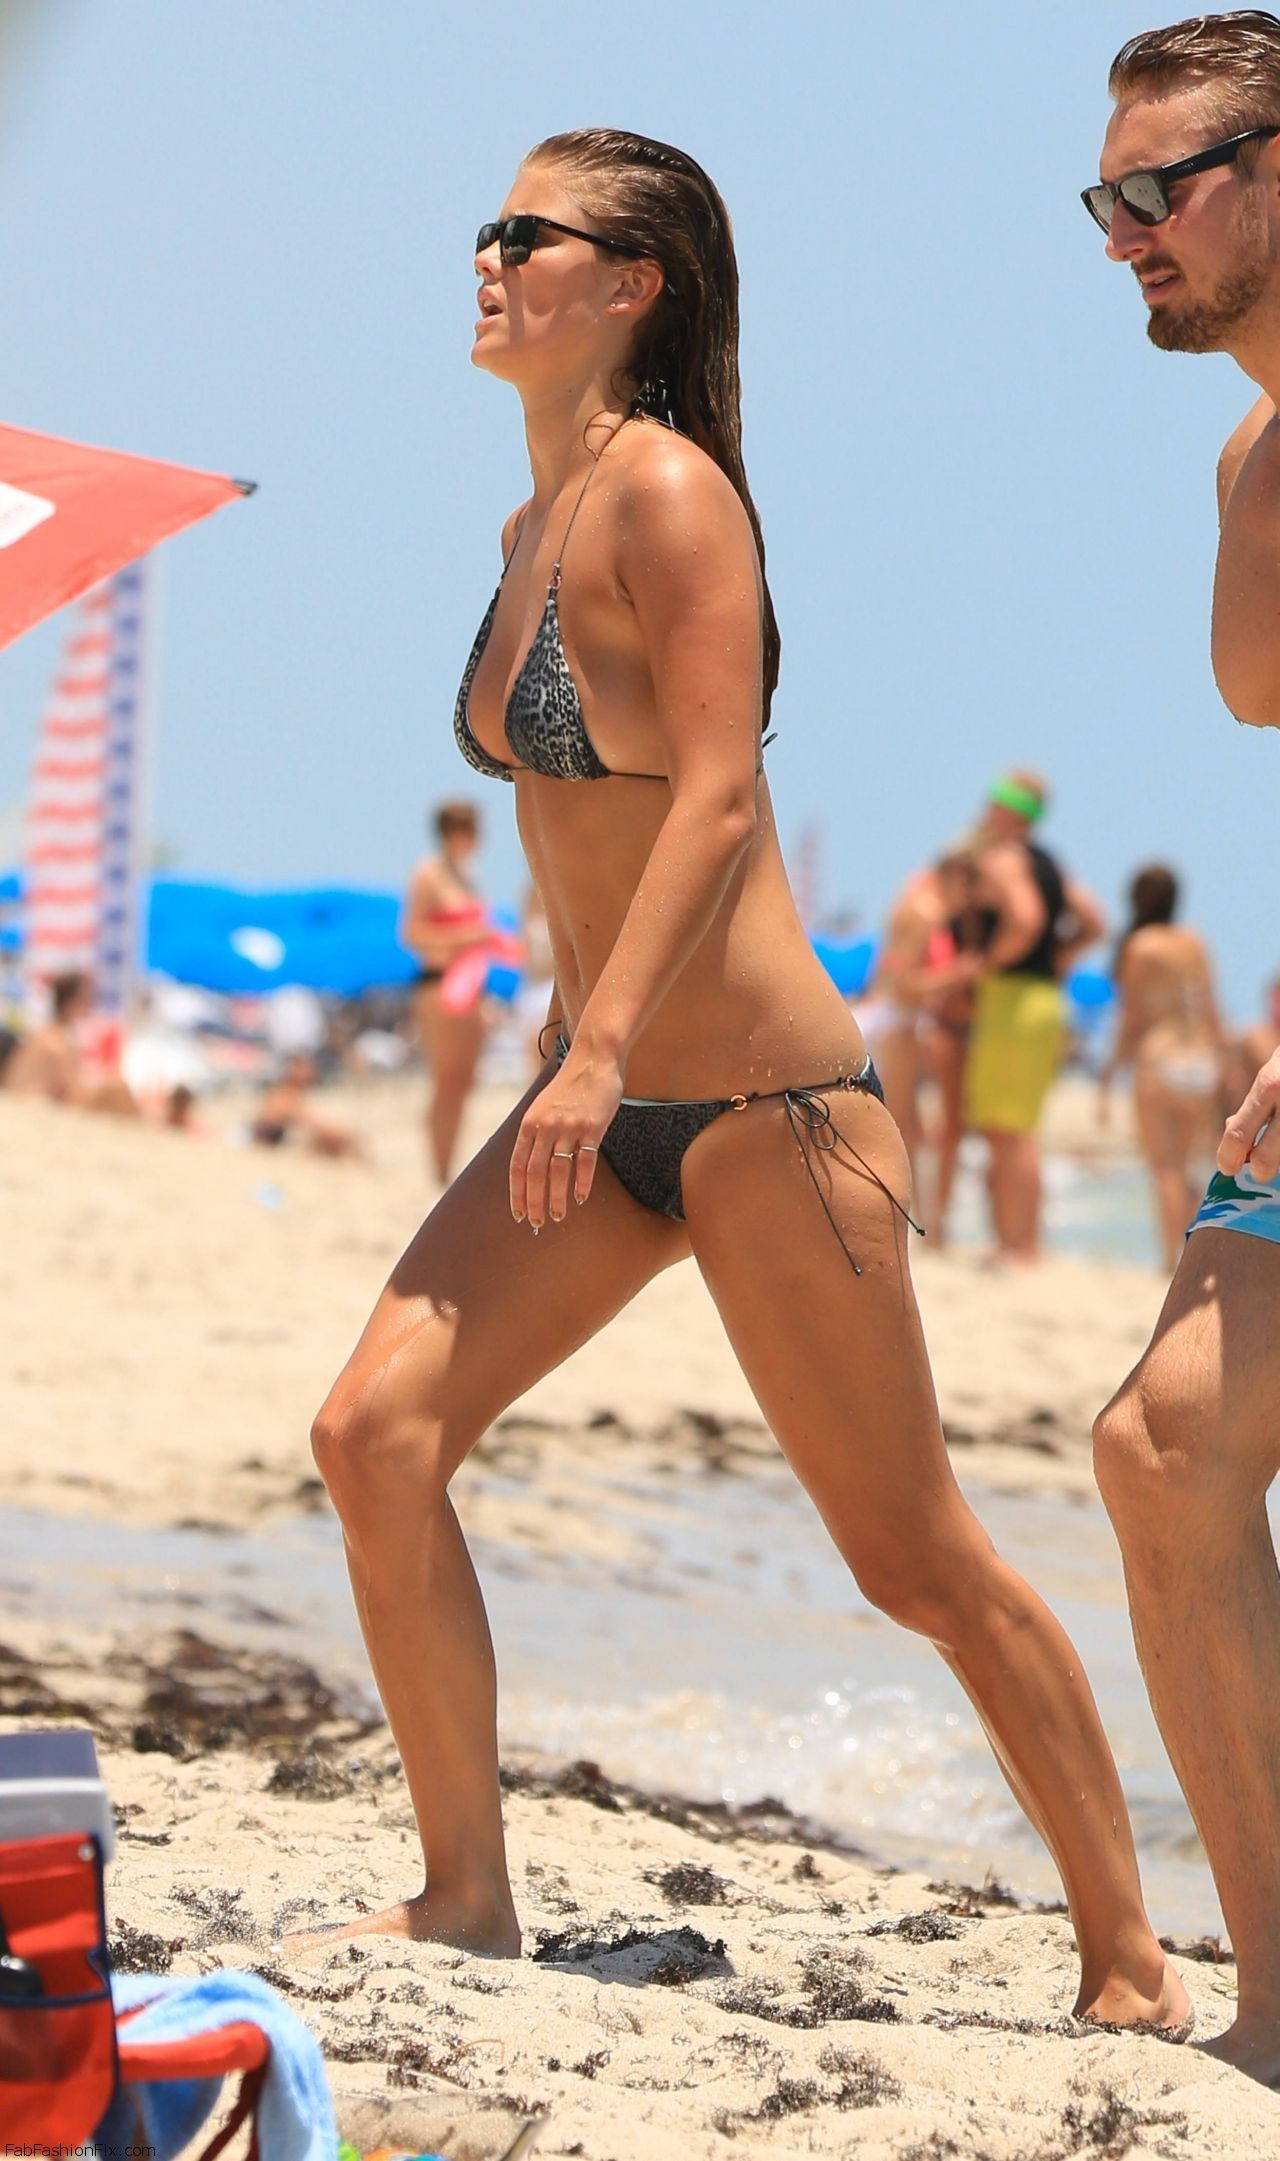 nina-agdal-hot-in-a-bikini-in-miami-july-2014_19